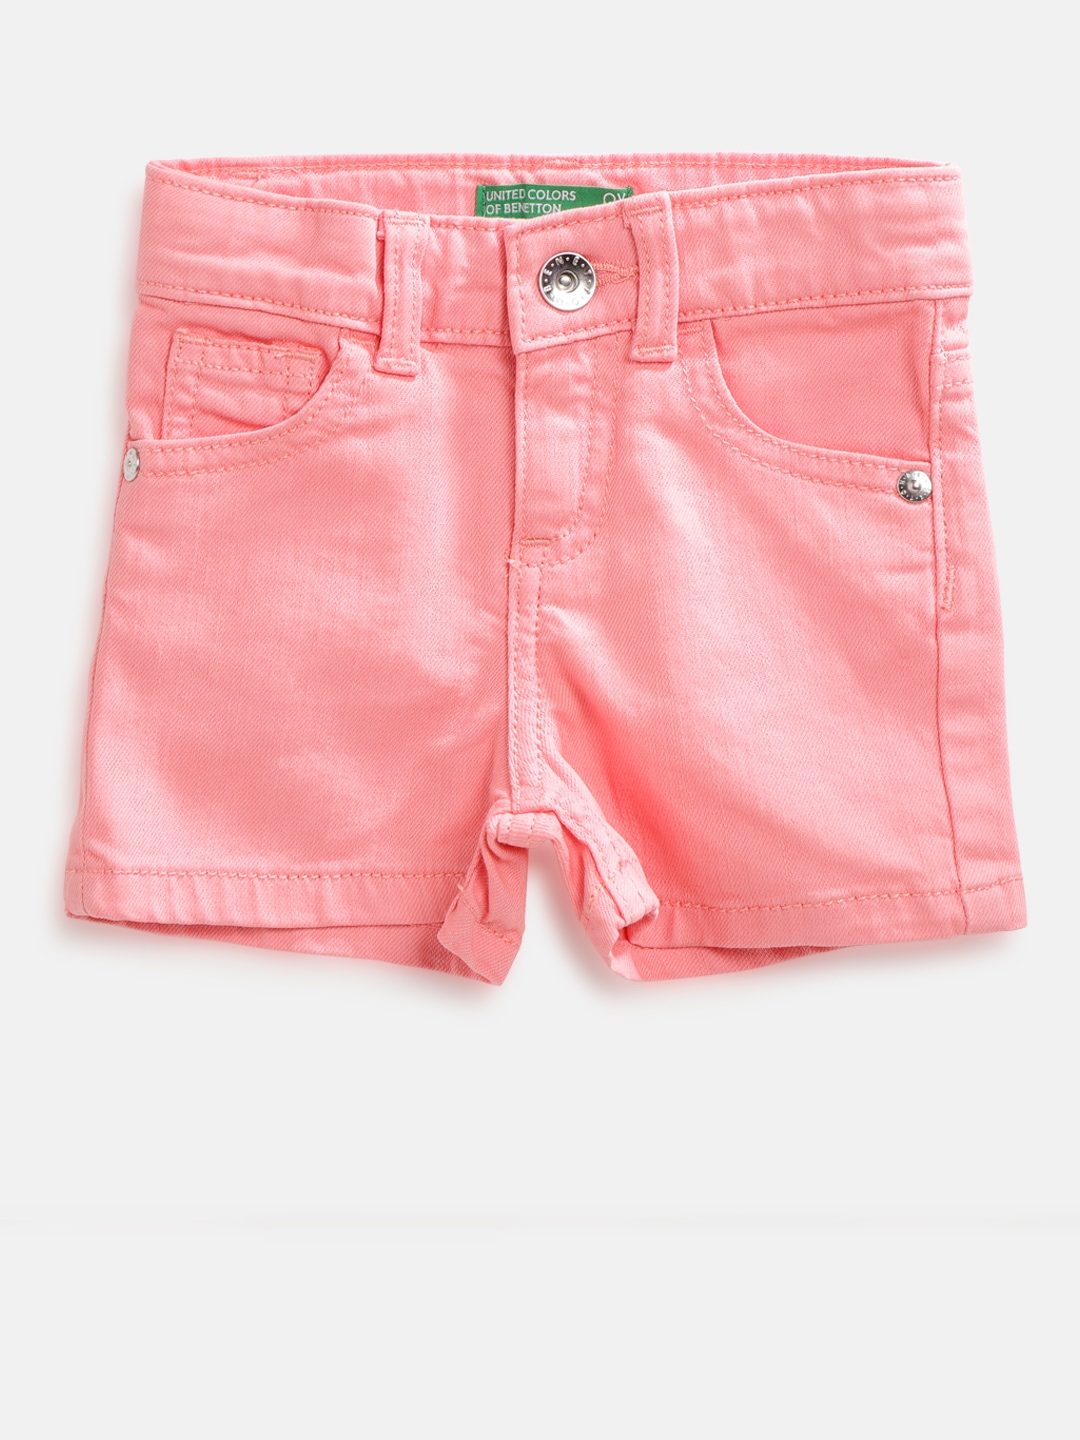 separation shoes c513e 78e37 Shorts For Girls- Buy Girls Shorts online in India - Myntra